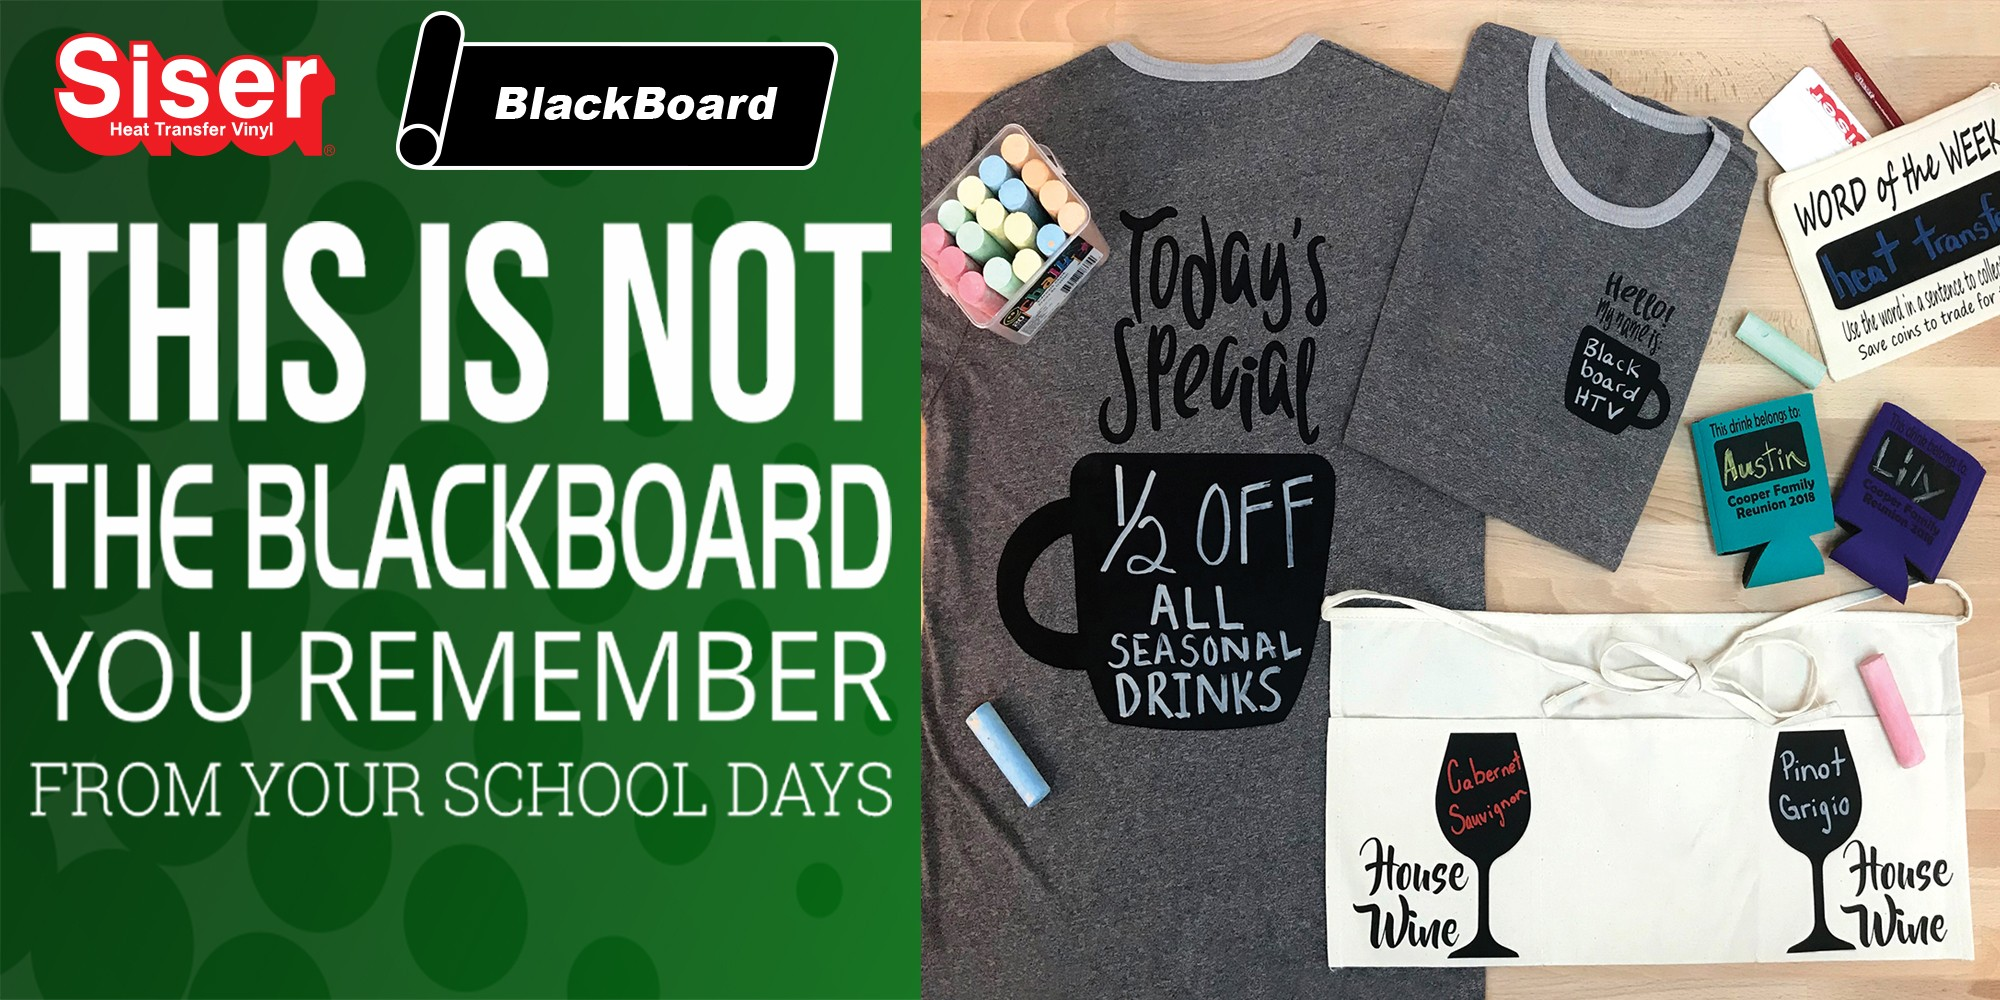 BlackBoard™ Heat Transfer Vinyl Write it, Wipe it, Repeat!